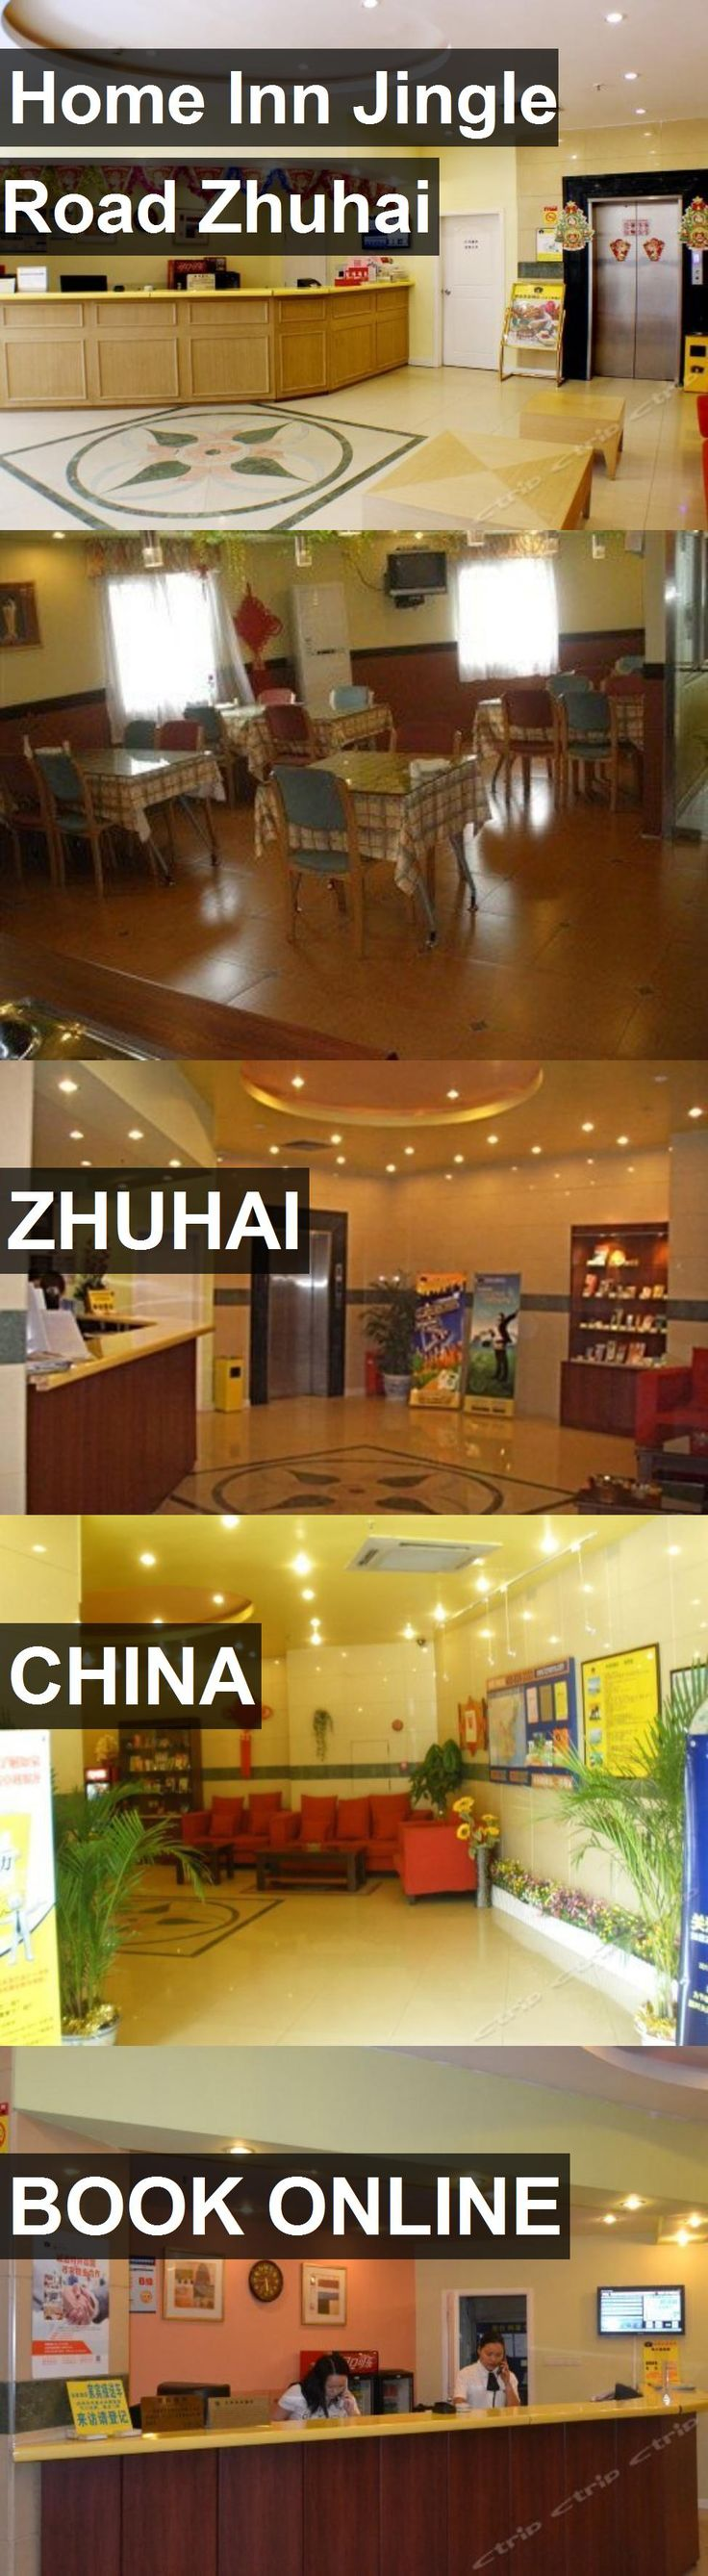 Hotel Home Inn Jingle Road Zhuhai in Zhuhai, China. For more information, photos, reviews and best prices please follow the link. #China #Zhuhai #travel #vacation #hotel